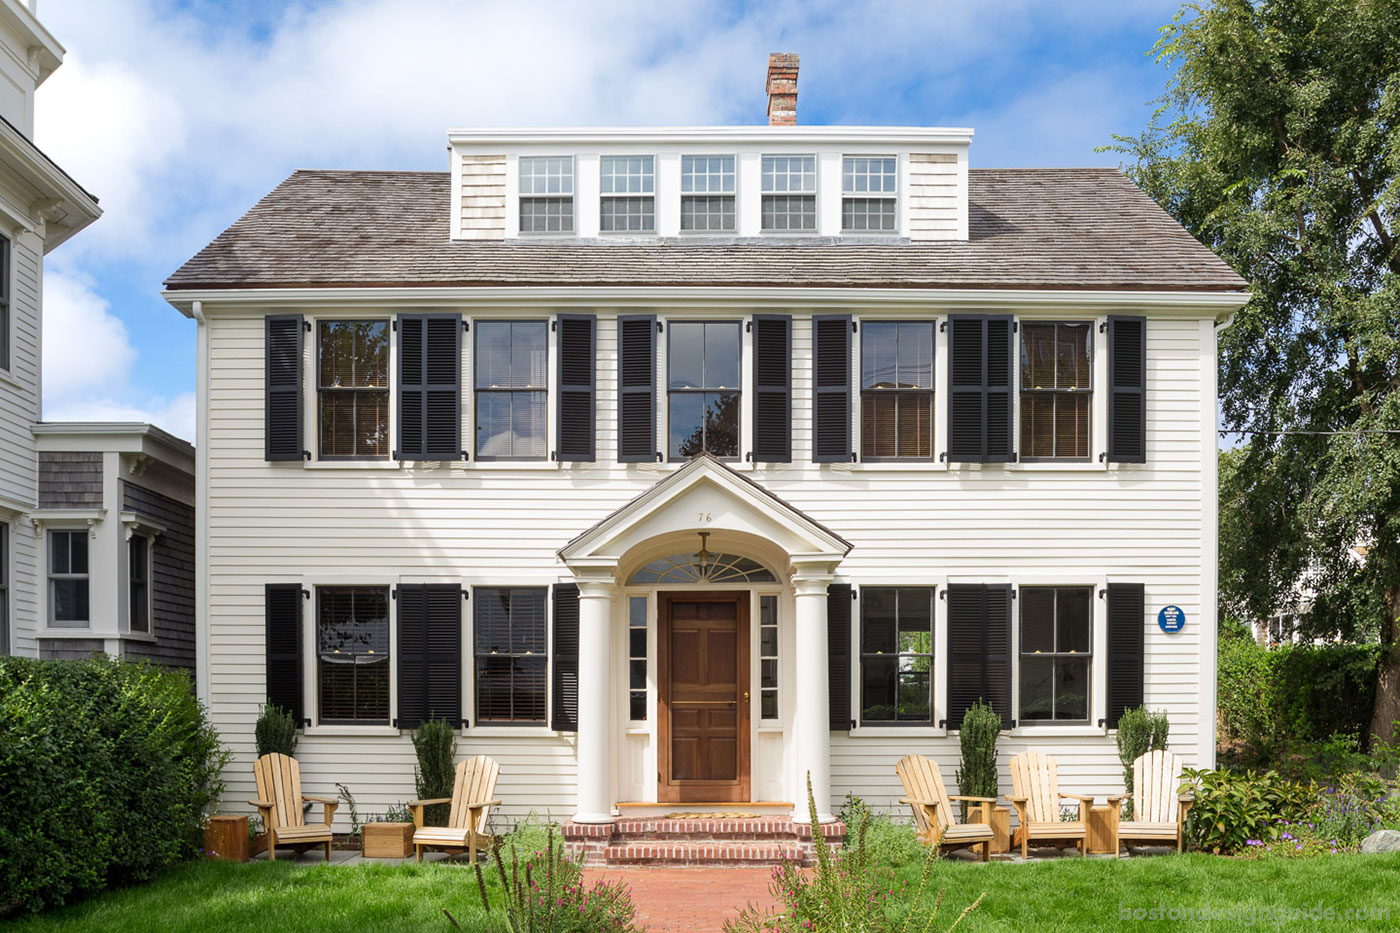 Provincetown renovation with period details by Bannon Builders